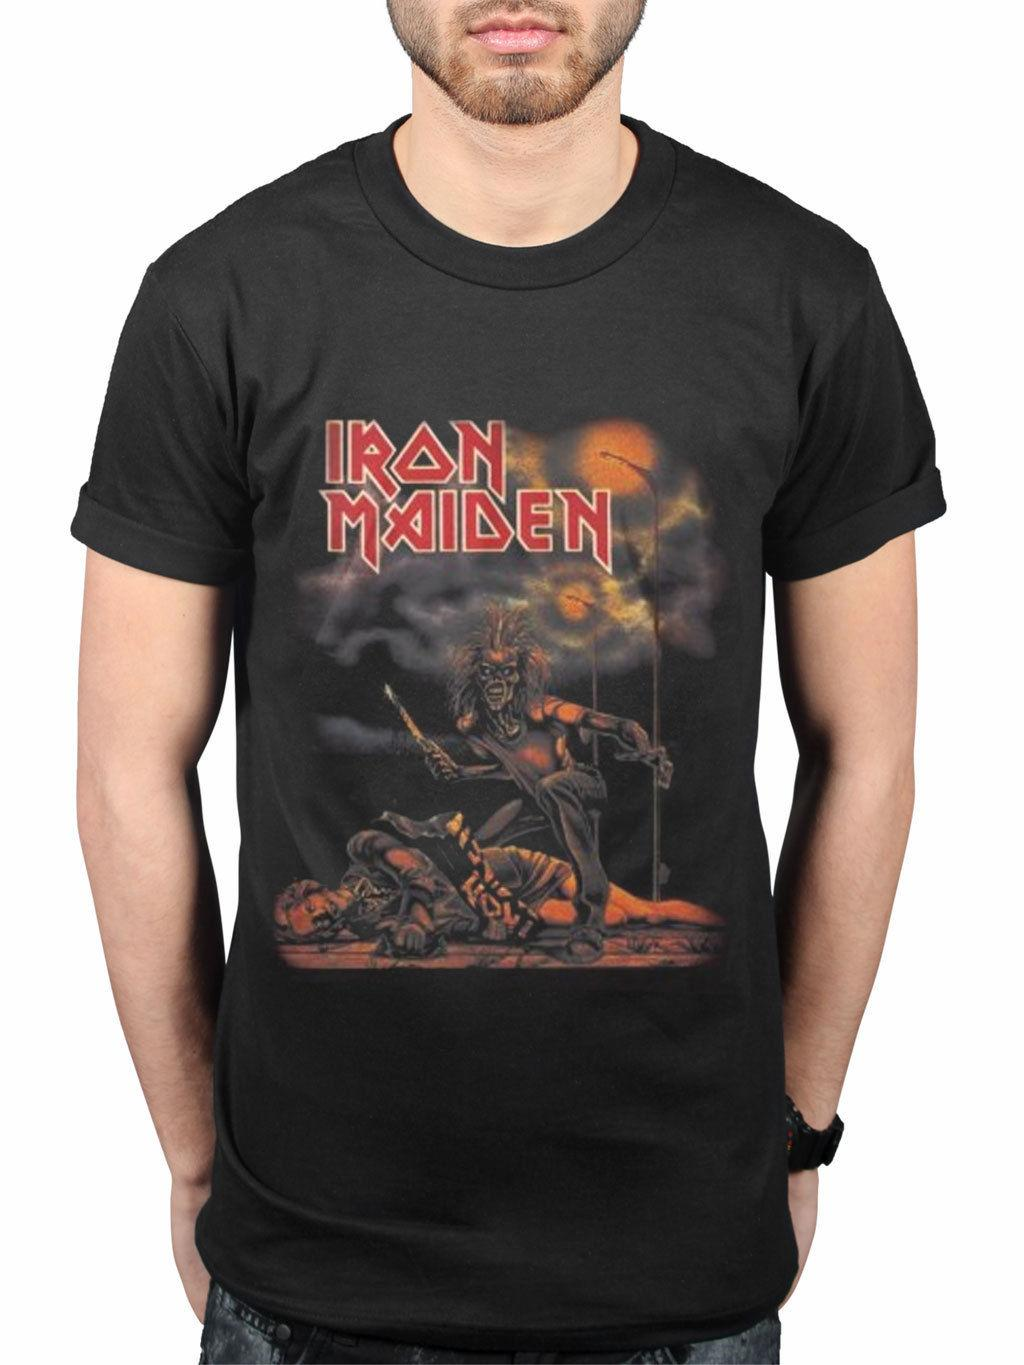 7edfee9204 Official Iron Maiden Sanctuary Killer NEW Graphic T Shirt Rock Metal Band  Merch Funny Unisex Casual Tshirt Top T Shirt Designers Business Shirt From  ...